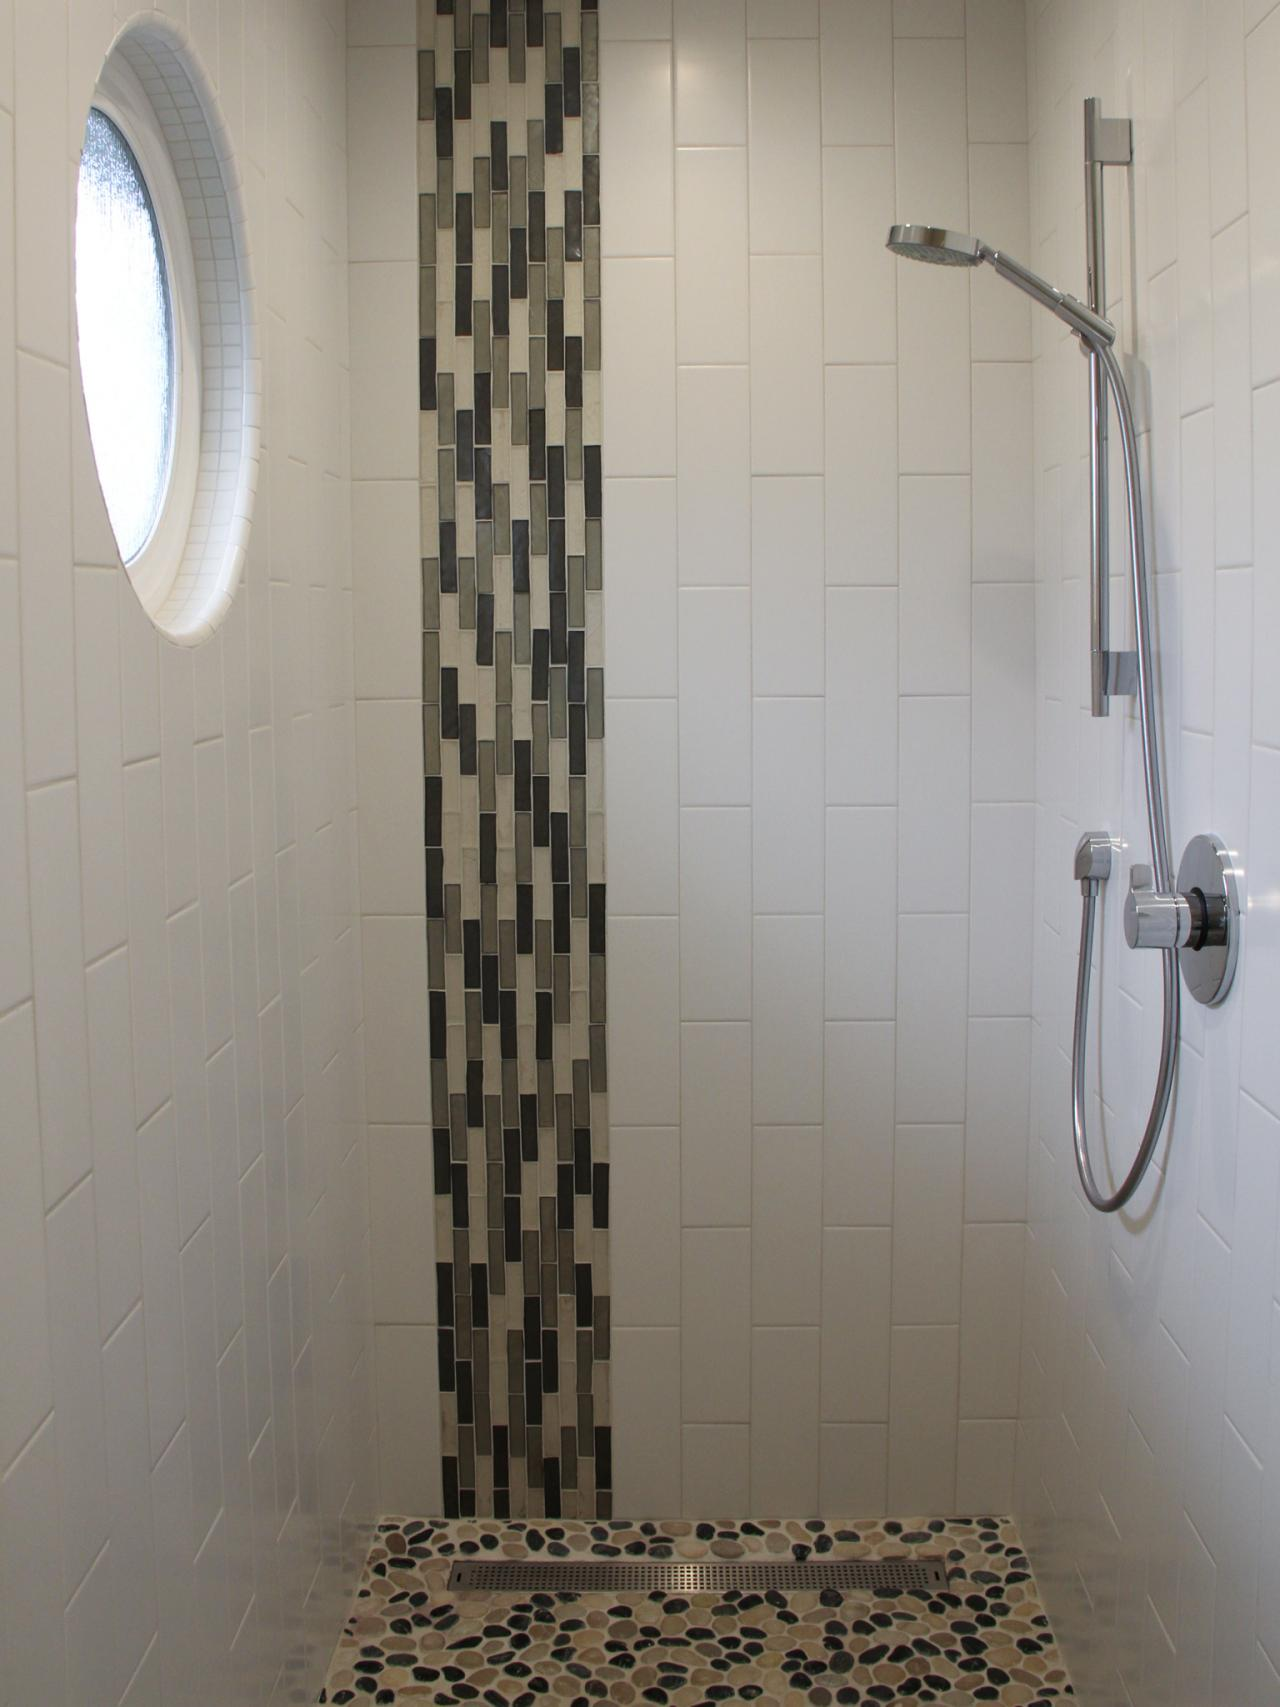 30 amazing pictures of glass tiles for shower walls for Bathroom design ideas mosaic tiles